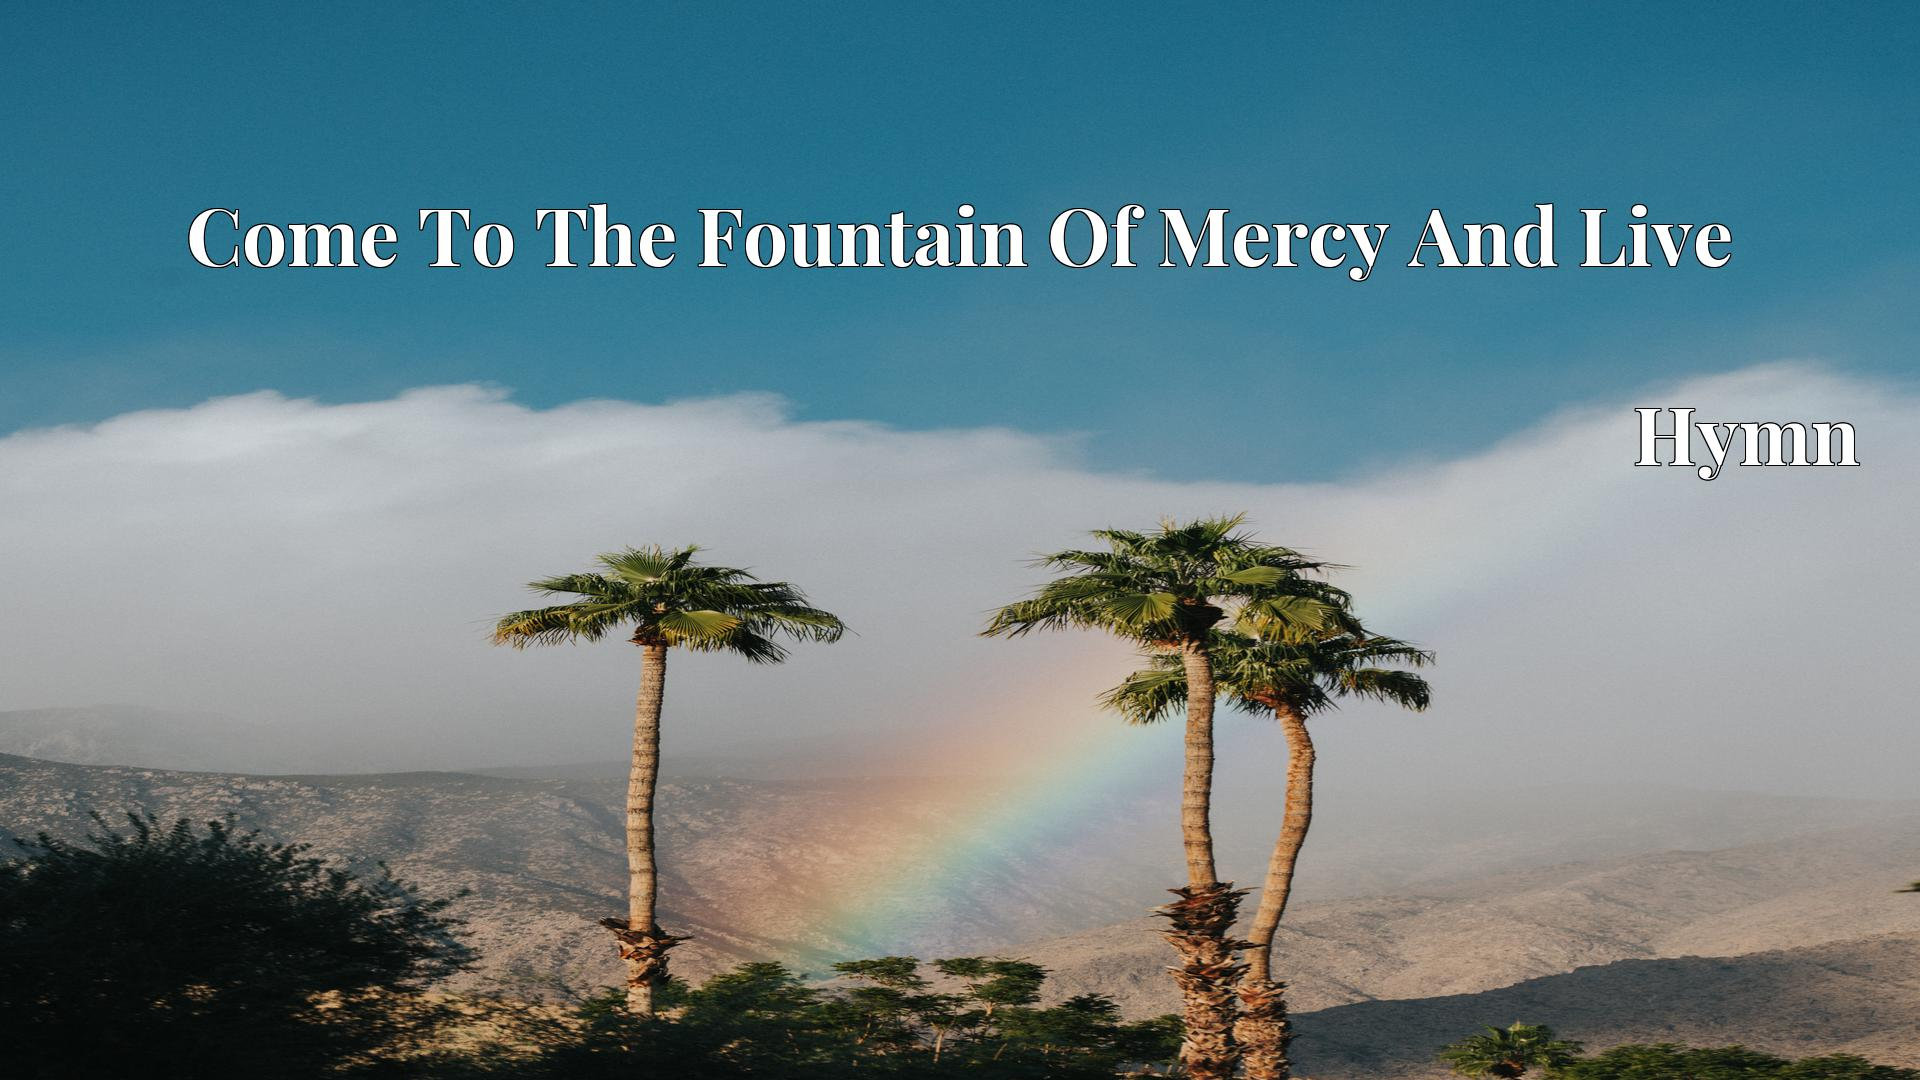 Come To The Fountain Of Mercy And Live - Hymn